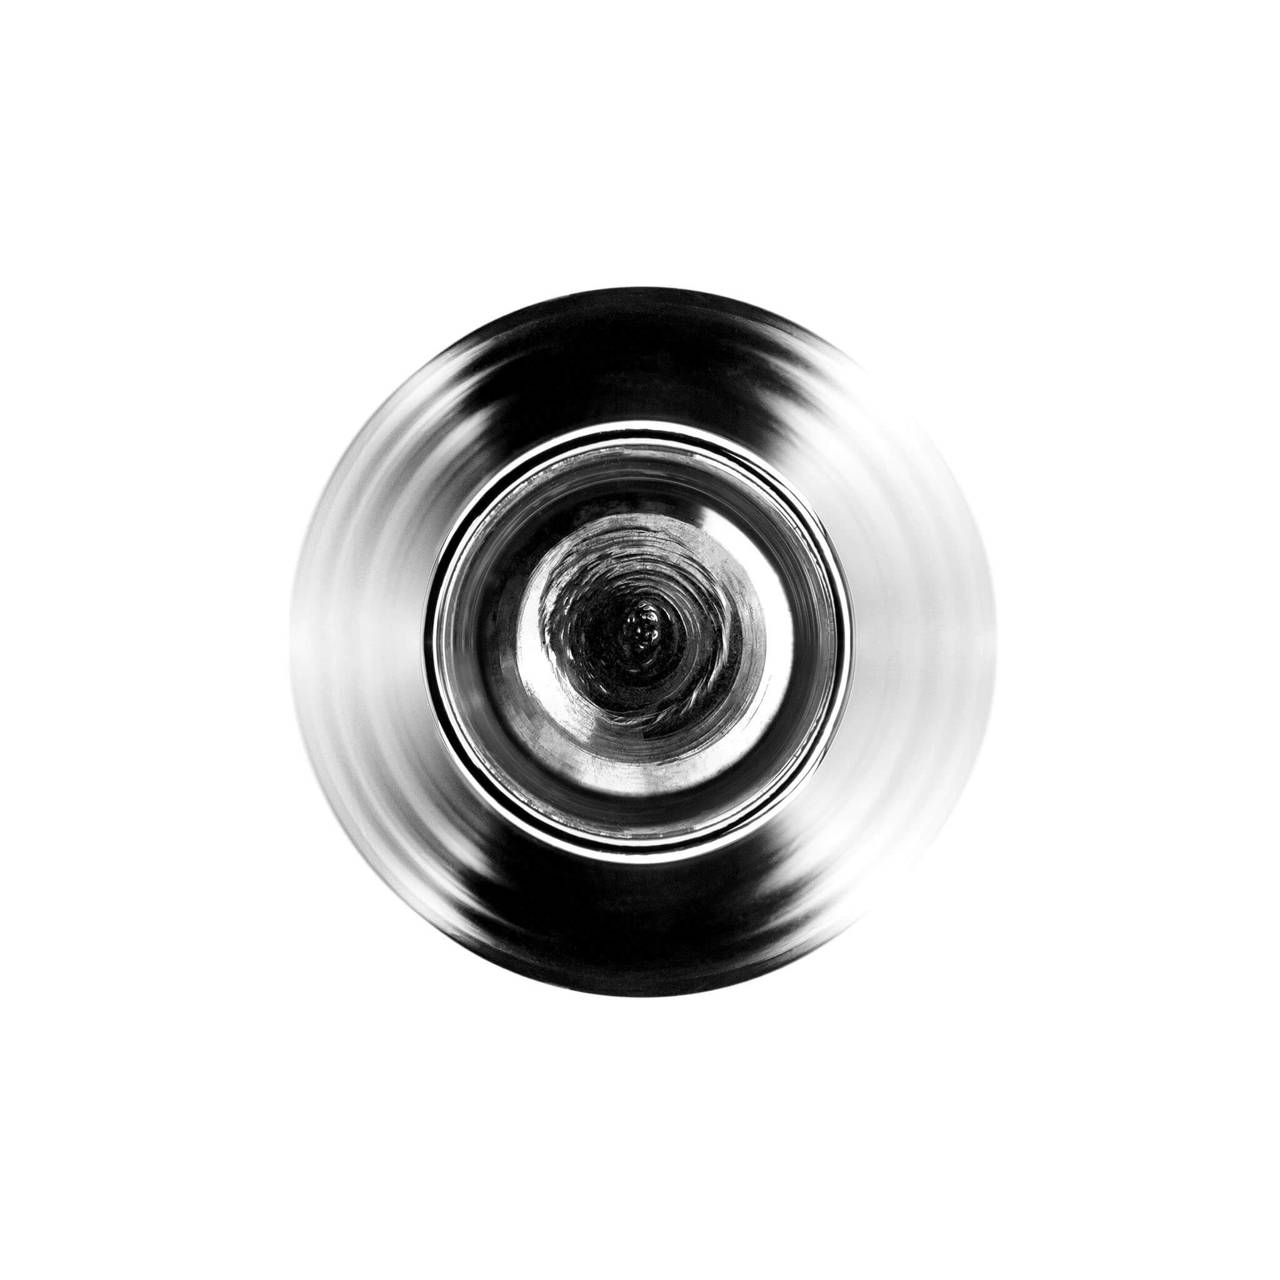 Silver Conical Vase top view